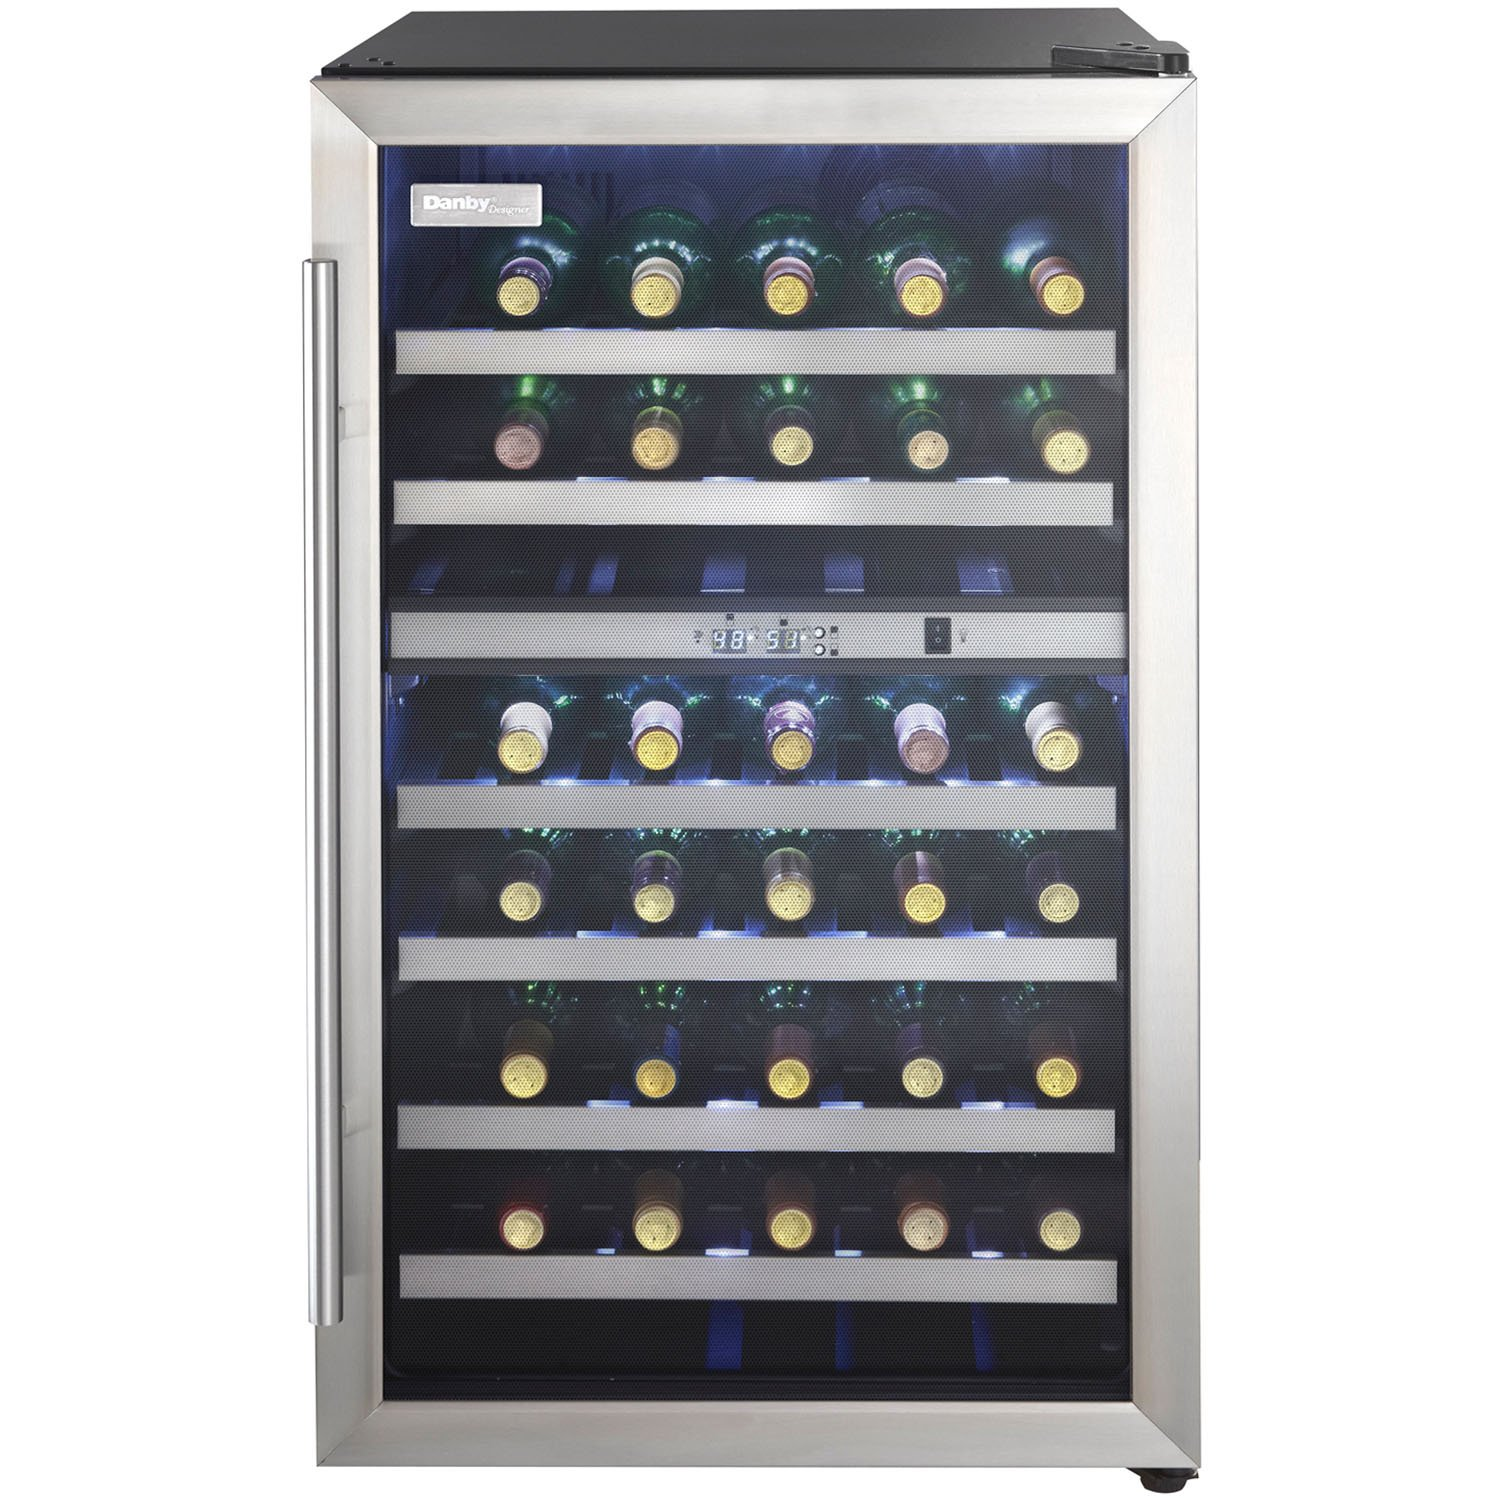 Danby DWC114BLSDD Designer 38-Bottle Dual-Zone Wine Cooler, Black/Stainless Steel/Glass Beverage Center by Danby